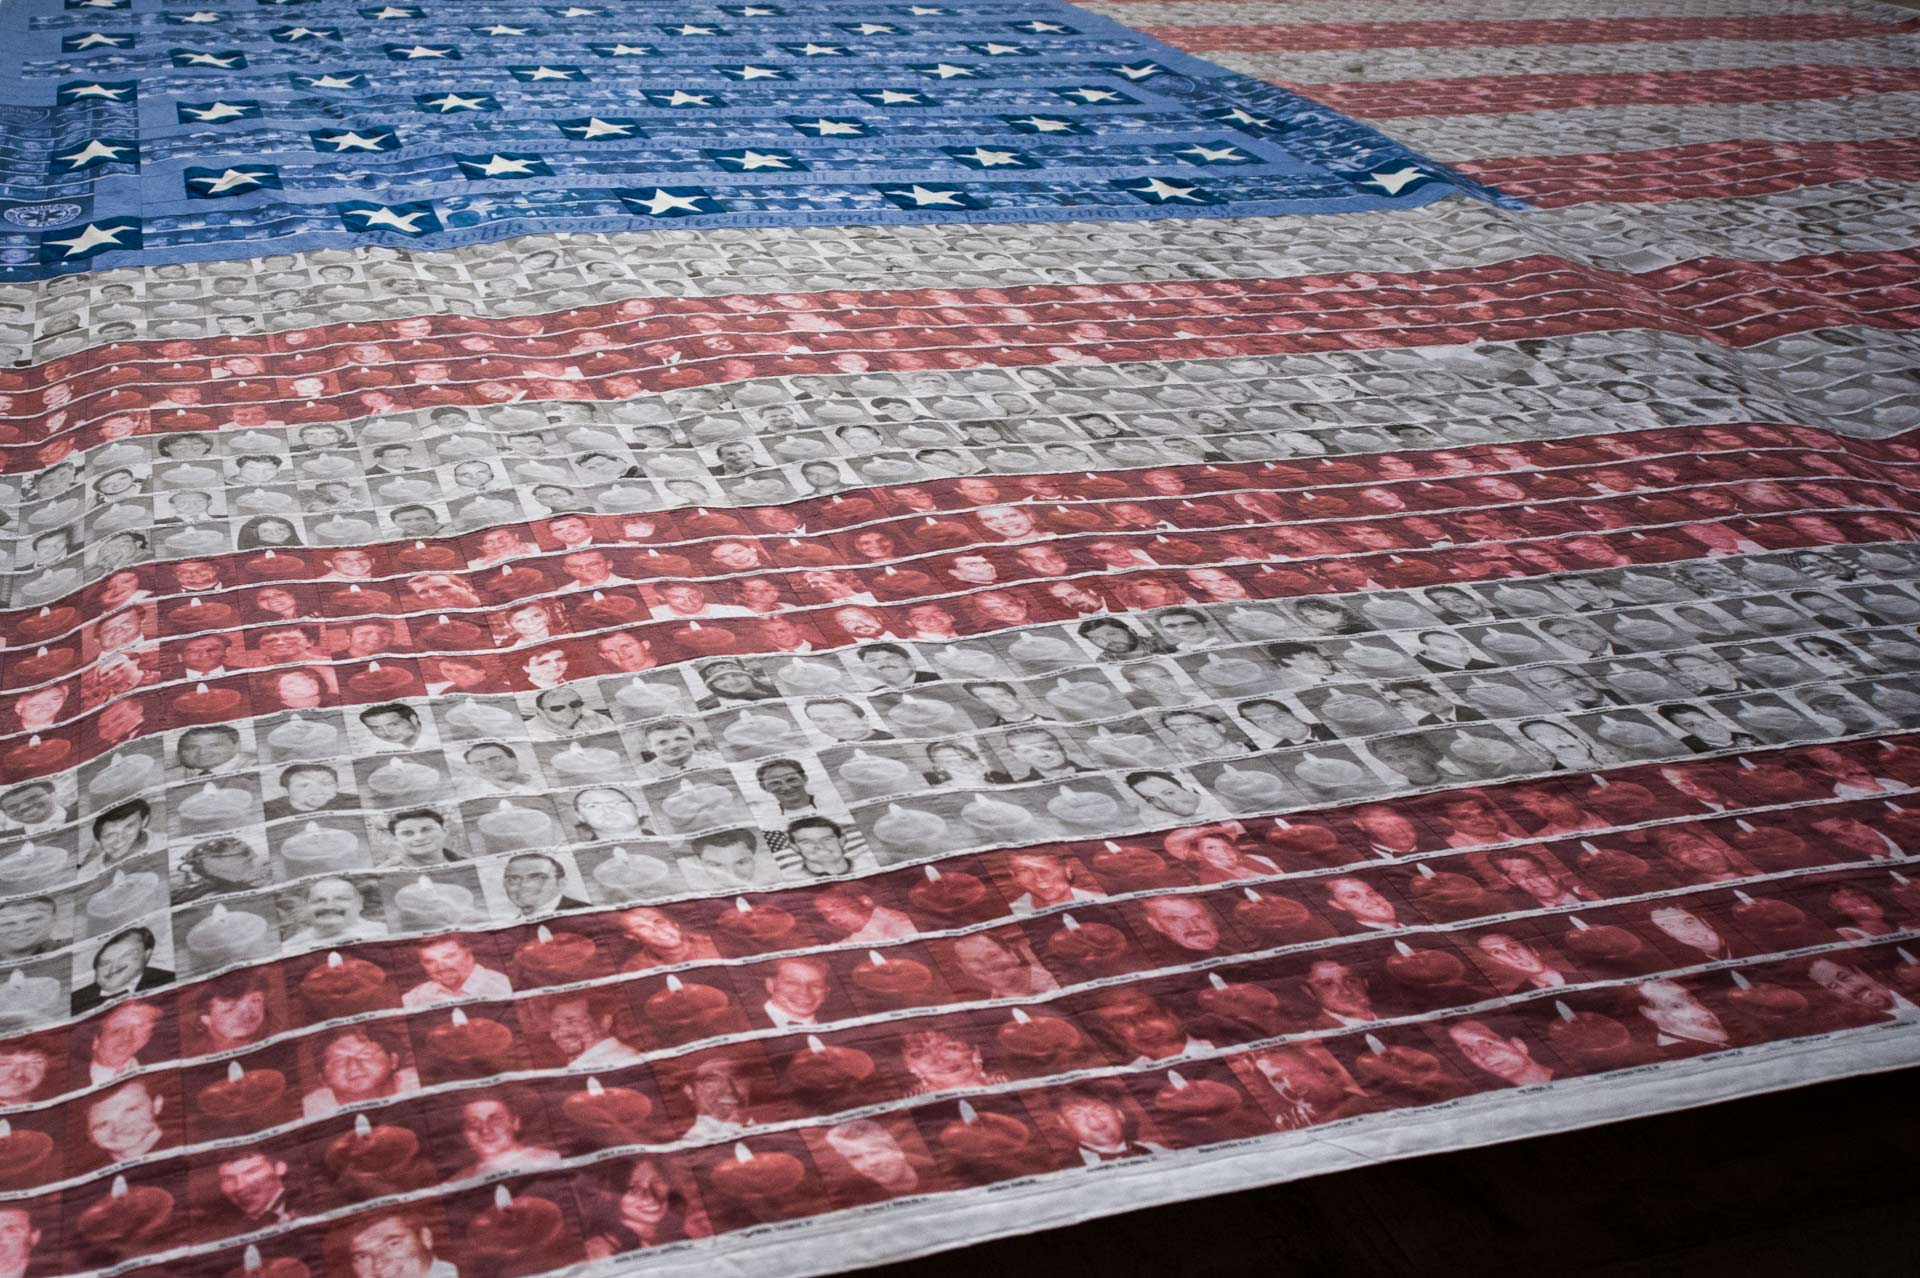 Flag made from photos of the victims of the 9/11 terror atacks at National September 11 Memorial Museum in New York, NY, USA